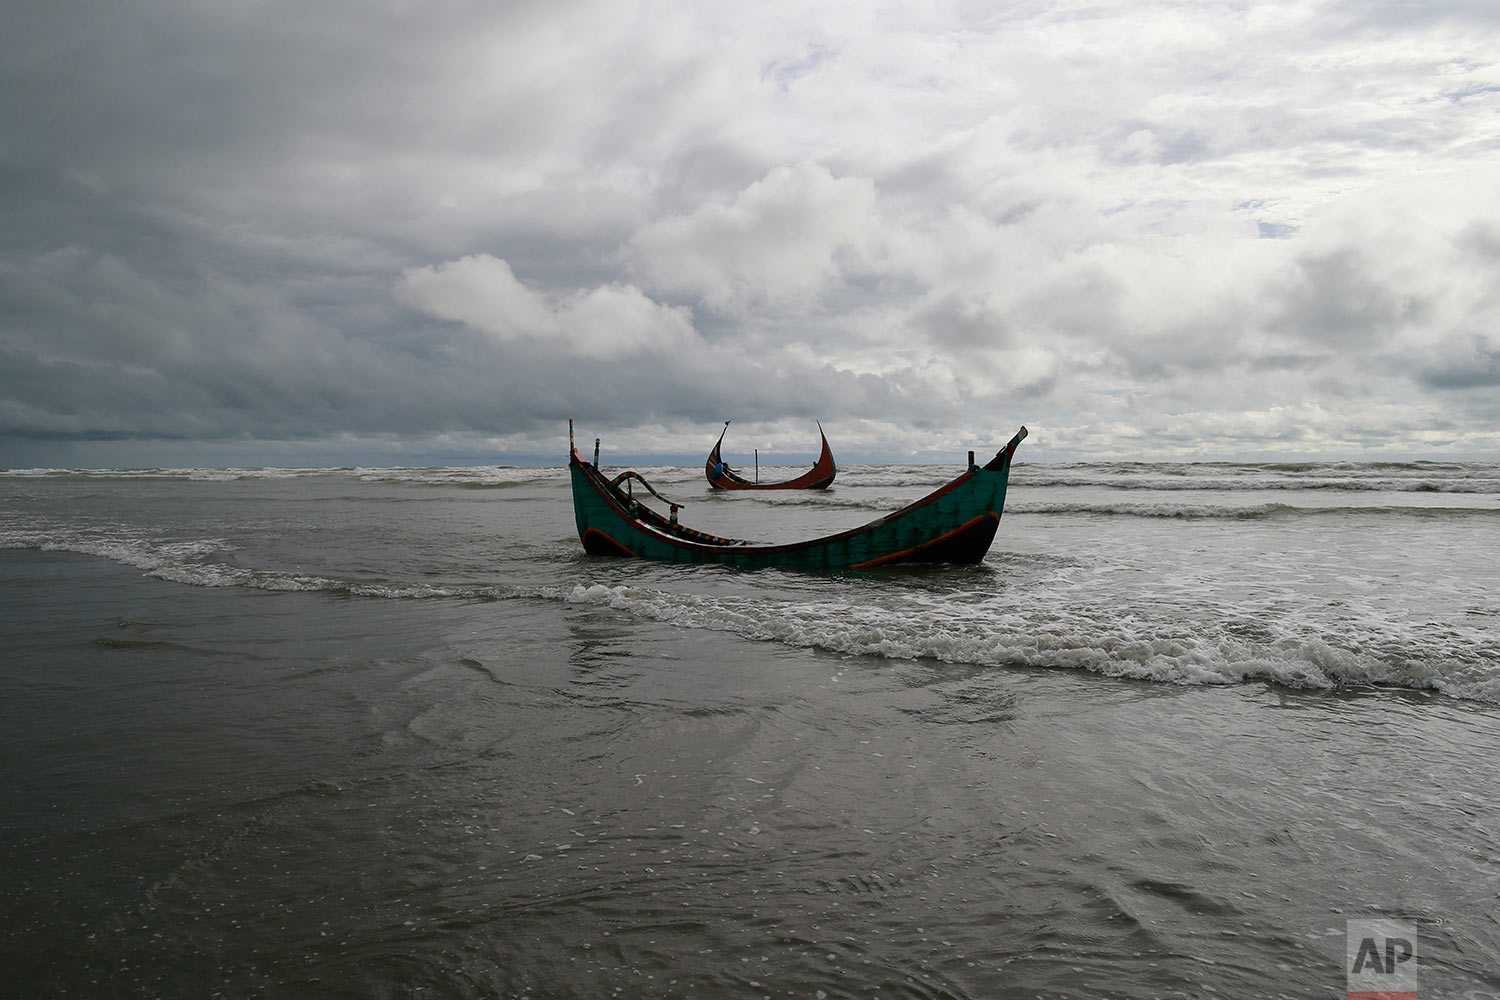 Two among three boats that capsized while being used by fleeing Rohingya is seen on the Bay of Bengal coast, after being recovered by Bangladeshi villagers at Shah Porir Deep, in Teknak, Bangladesh, Thursday, Aug.31, 2017. Three boats carrying ethnic Rohingya fleeing violence in Myanmar have capsized in Bangladesh and 26 bodies of women and children have been recovered, officials said Thursday. Last week, a group of ethnic minority Rohingya insurgents attacked at least two dozen police posts in Myanmar's Rakhine state, triggering fighting with security forces that left more than 100 people dead and forced at least 18,000 Rohingya to flee into neighboring Bangladesh. (AP Photo/Suvra Kanti Das)